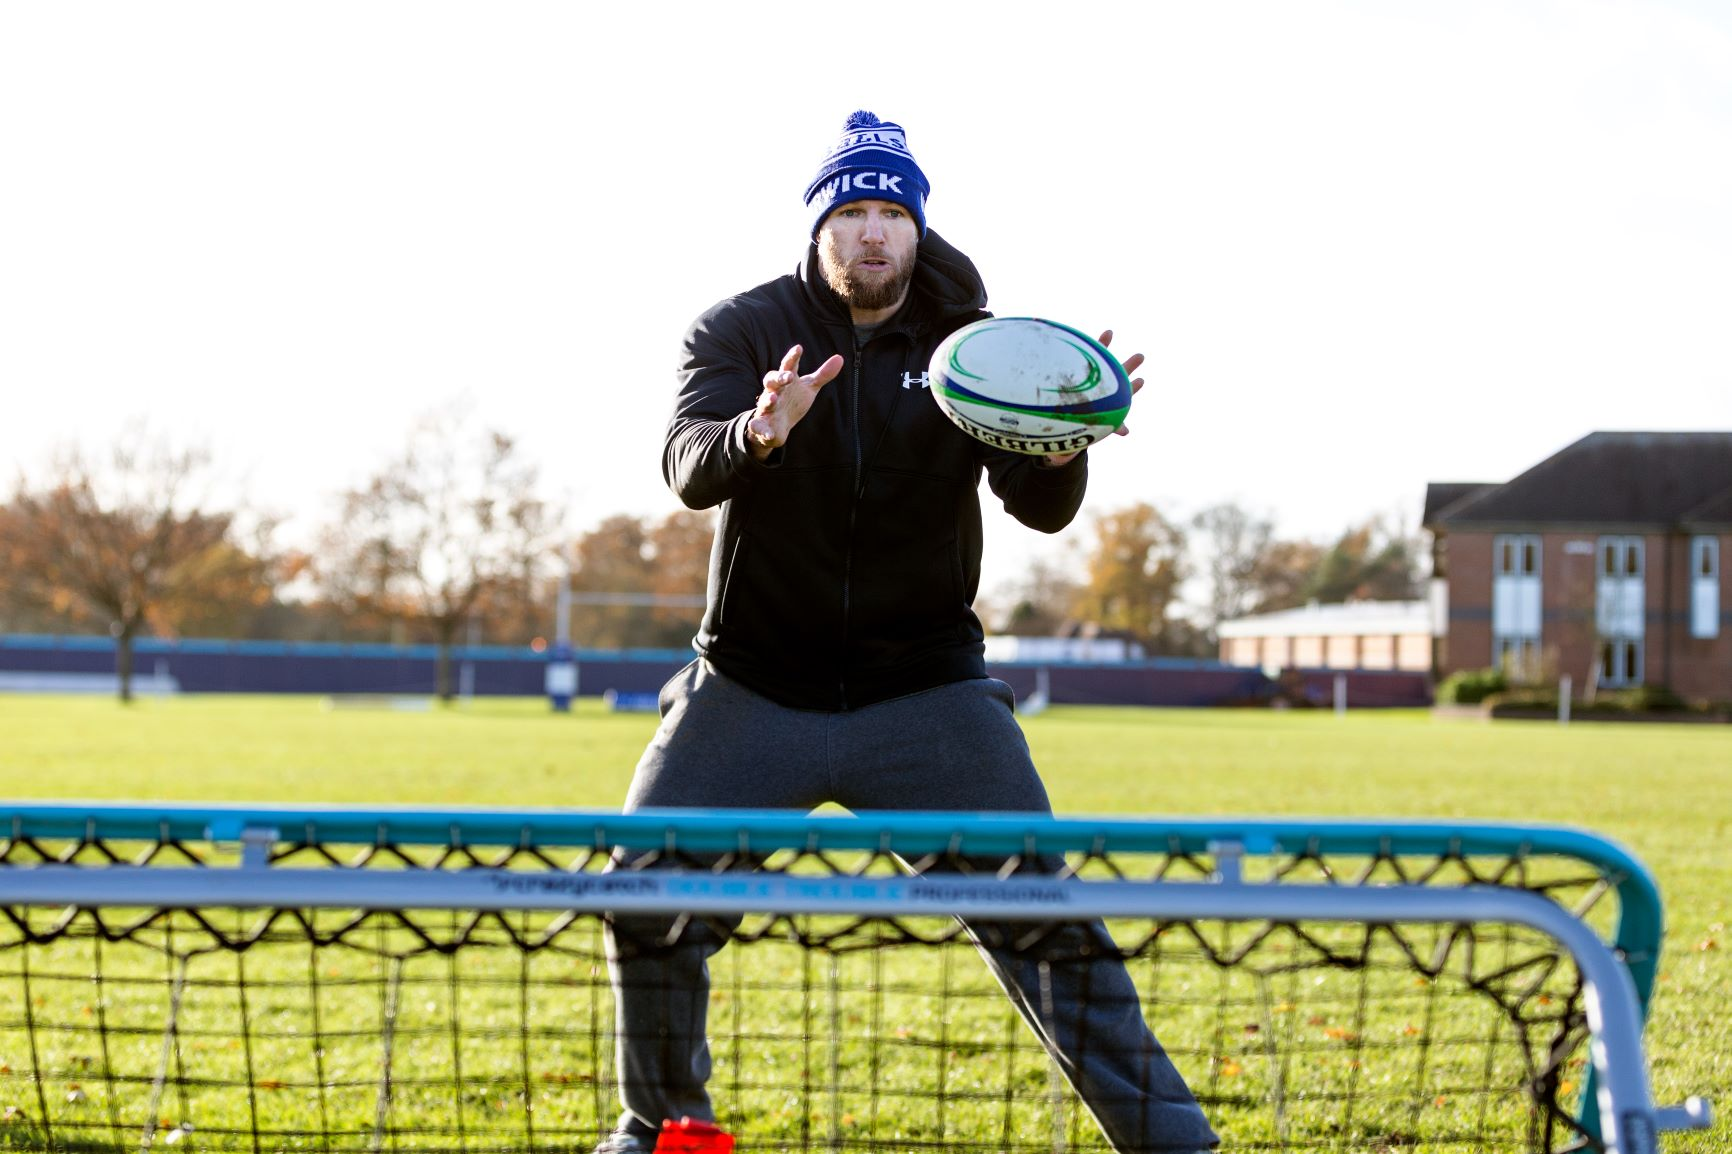 James Haskell Crazy Catch Pro DT